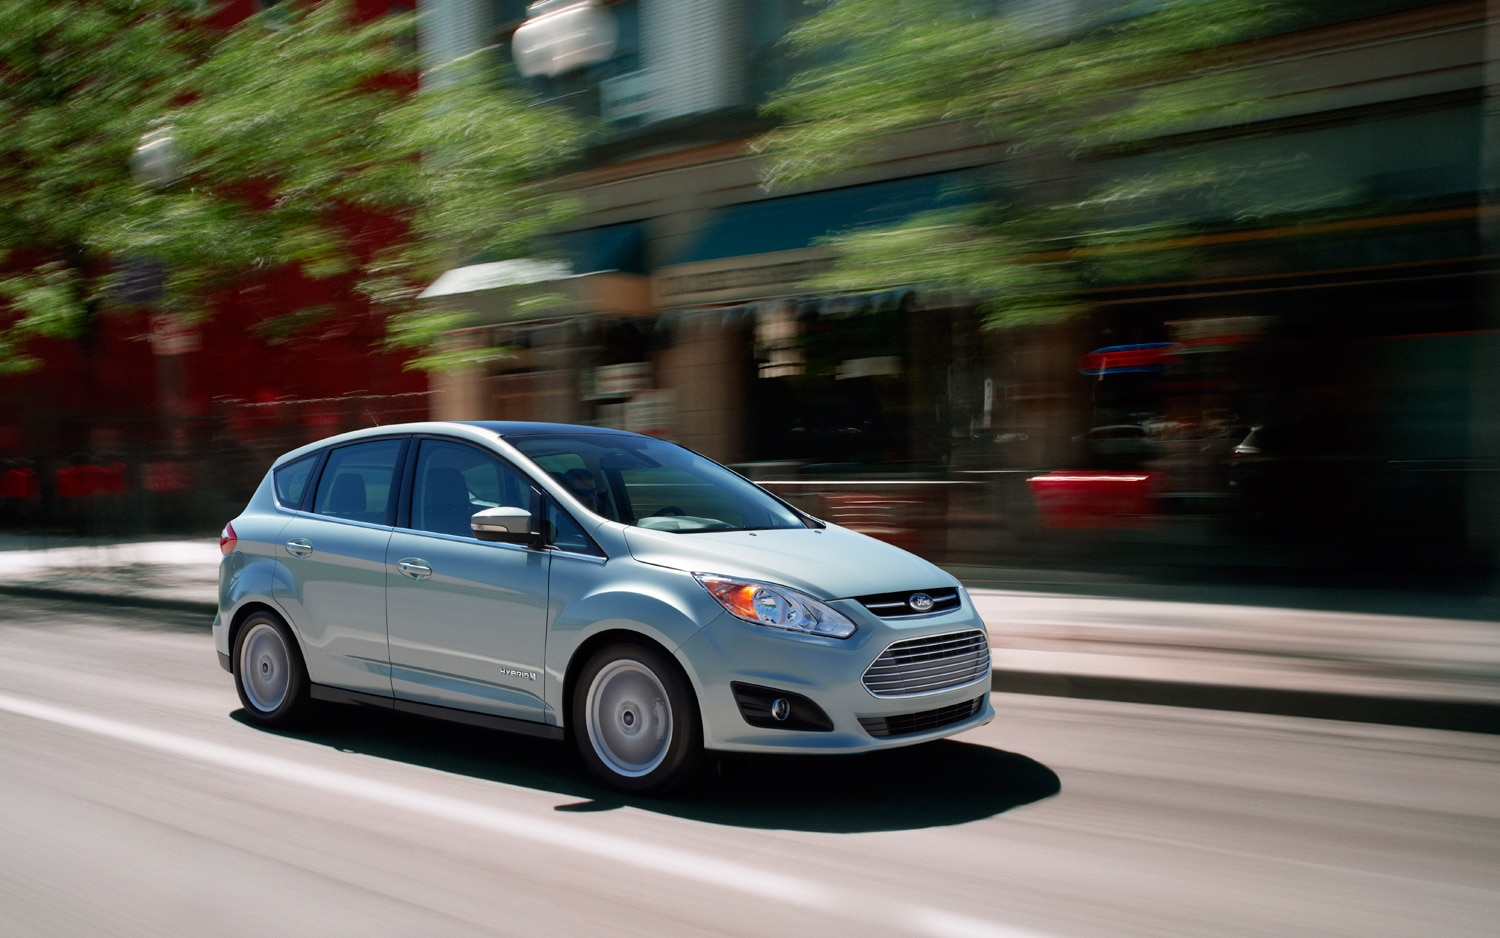 2013 Ford C Max Hybrid Front Right Side View 21